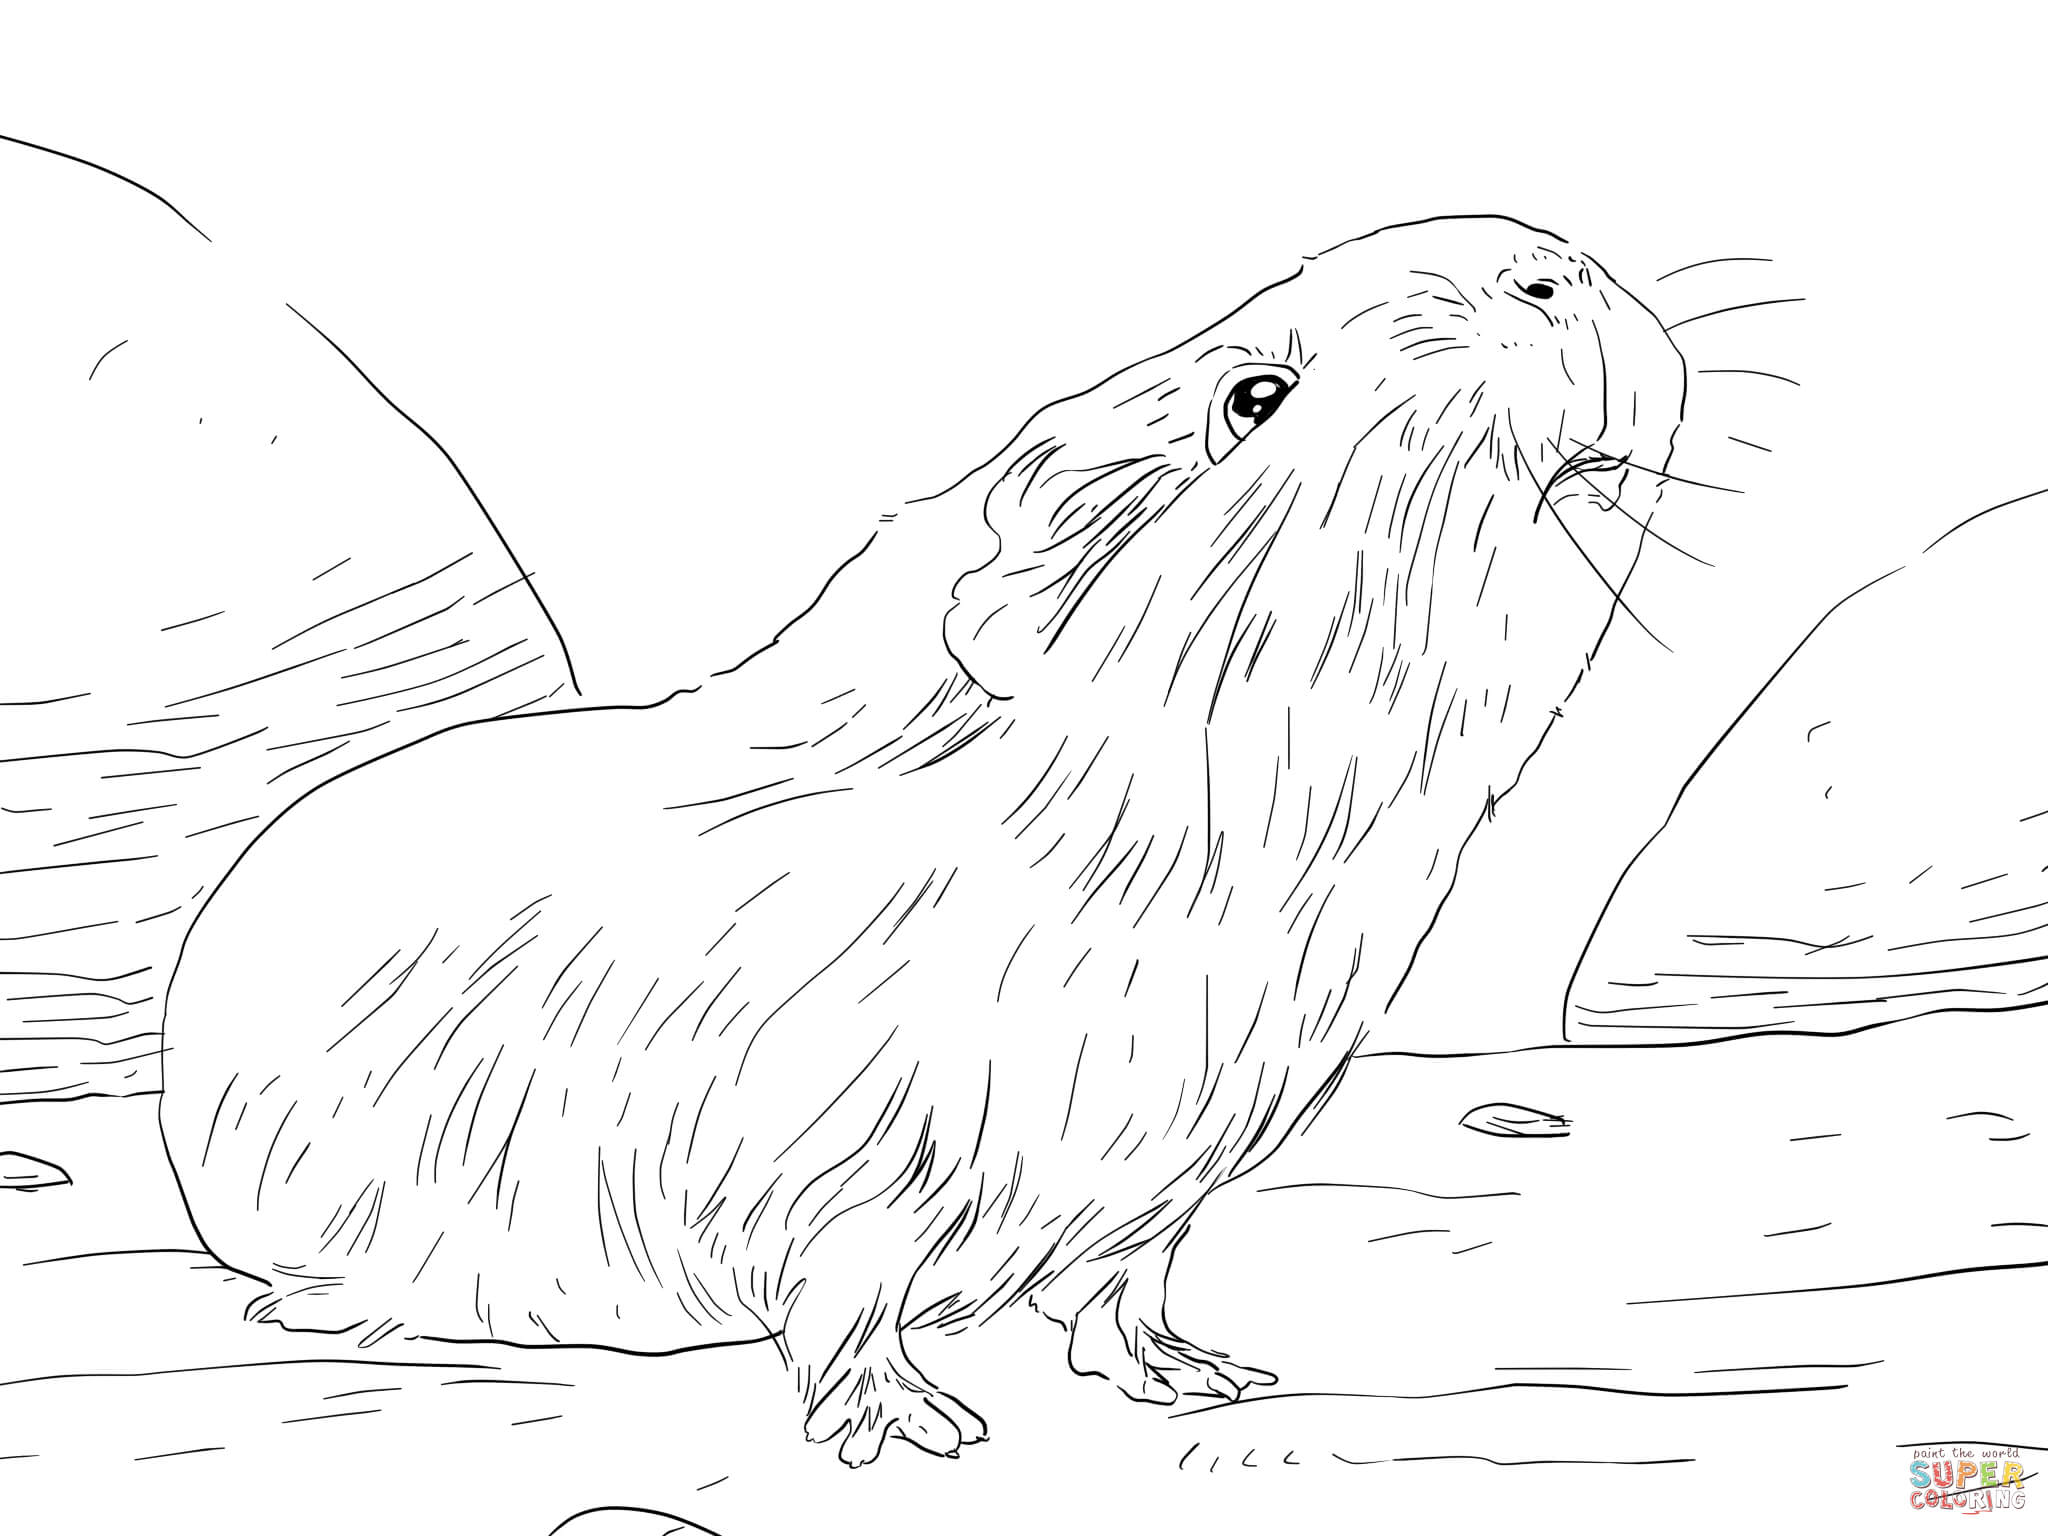 Printable coloring pages guinea pigs - Curious Guinea Pig Coloring Page Free Printable Coloring Pages